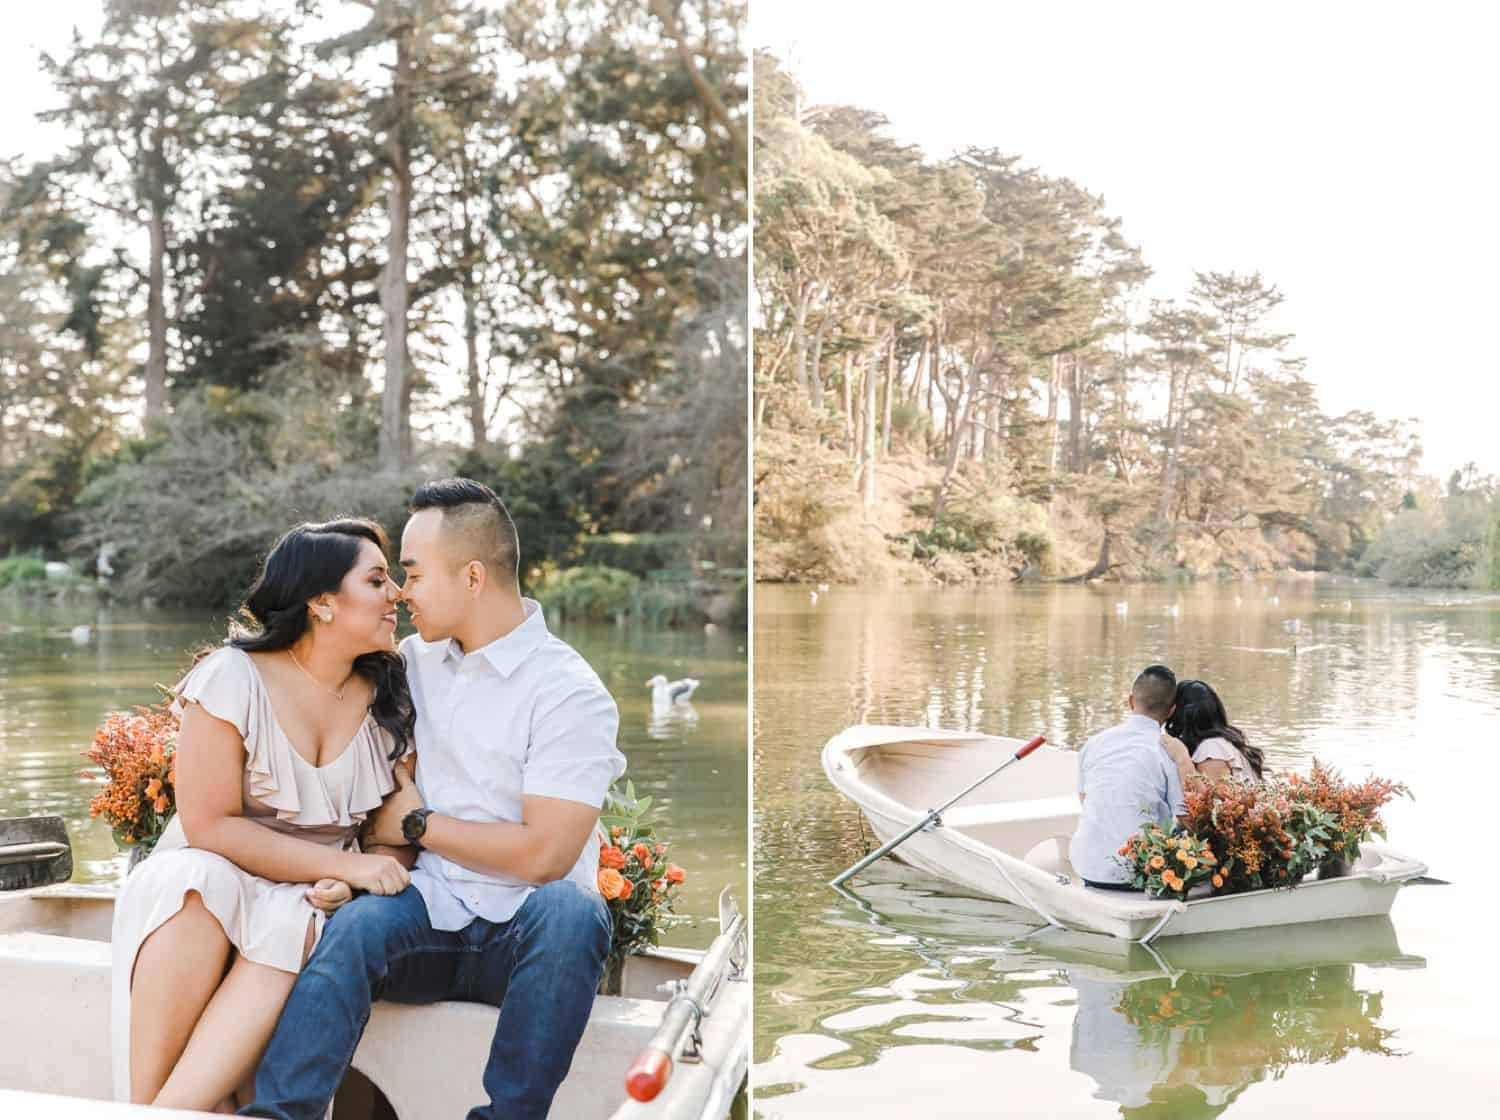 Photos of a couple posing on a boat